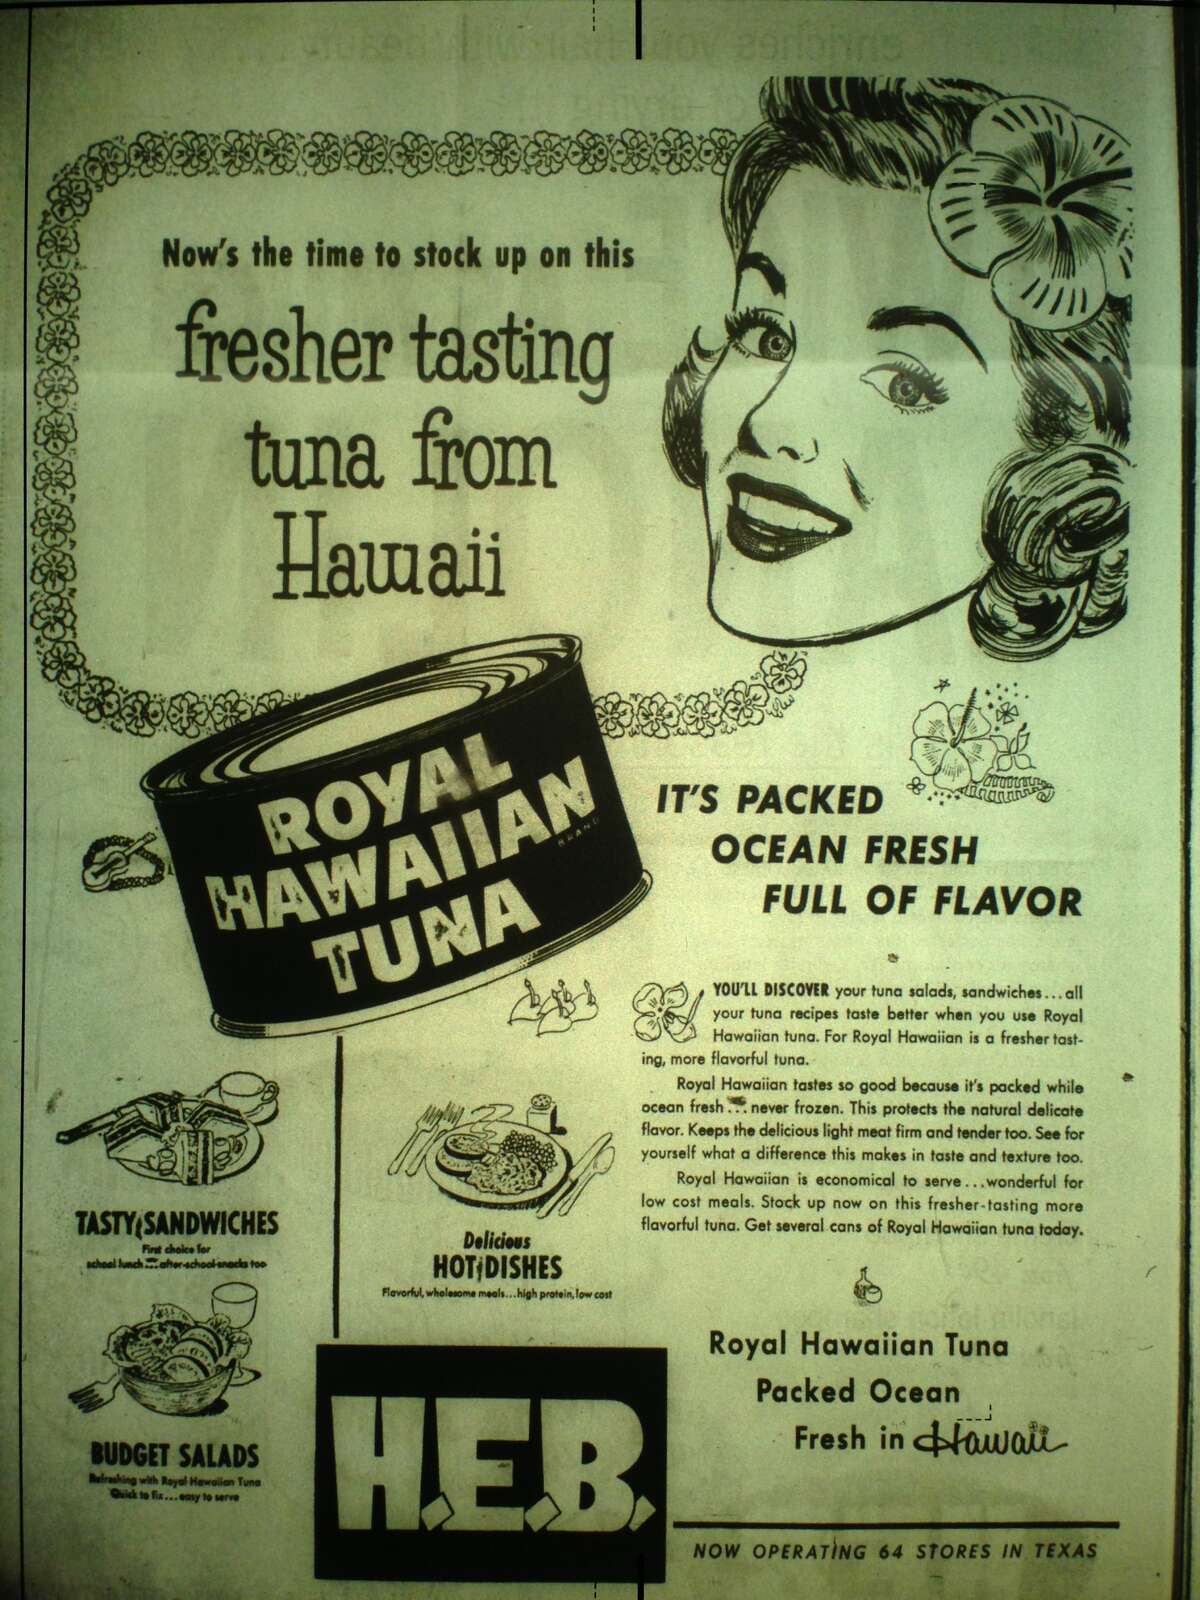 Grocery store ads that ran in San Antonio newspapers in February 1955.